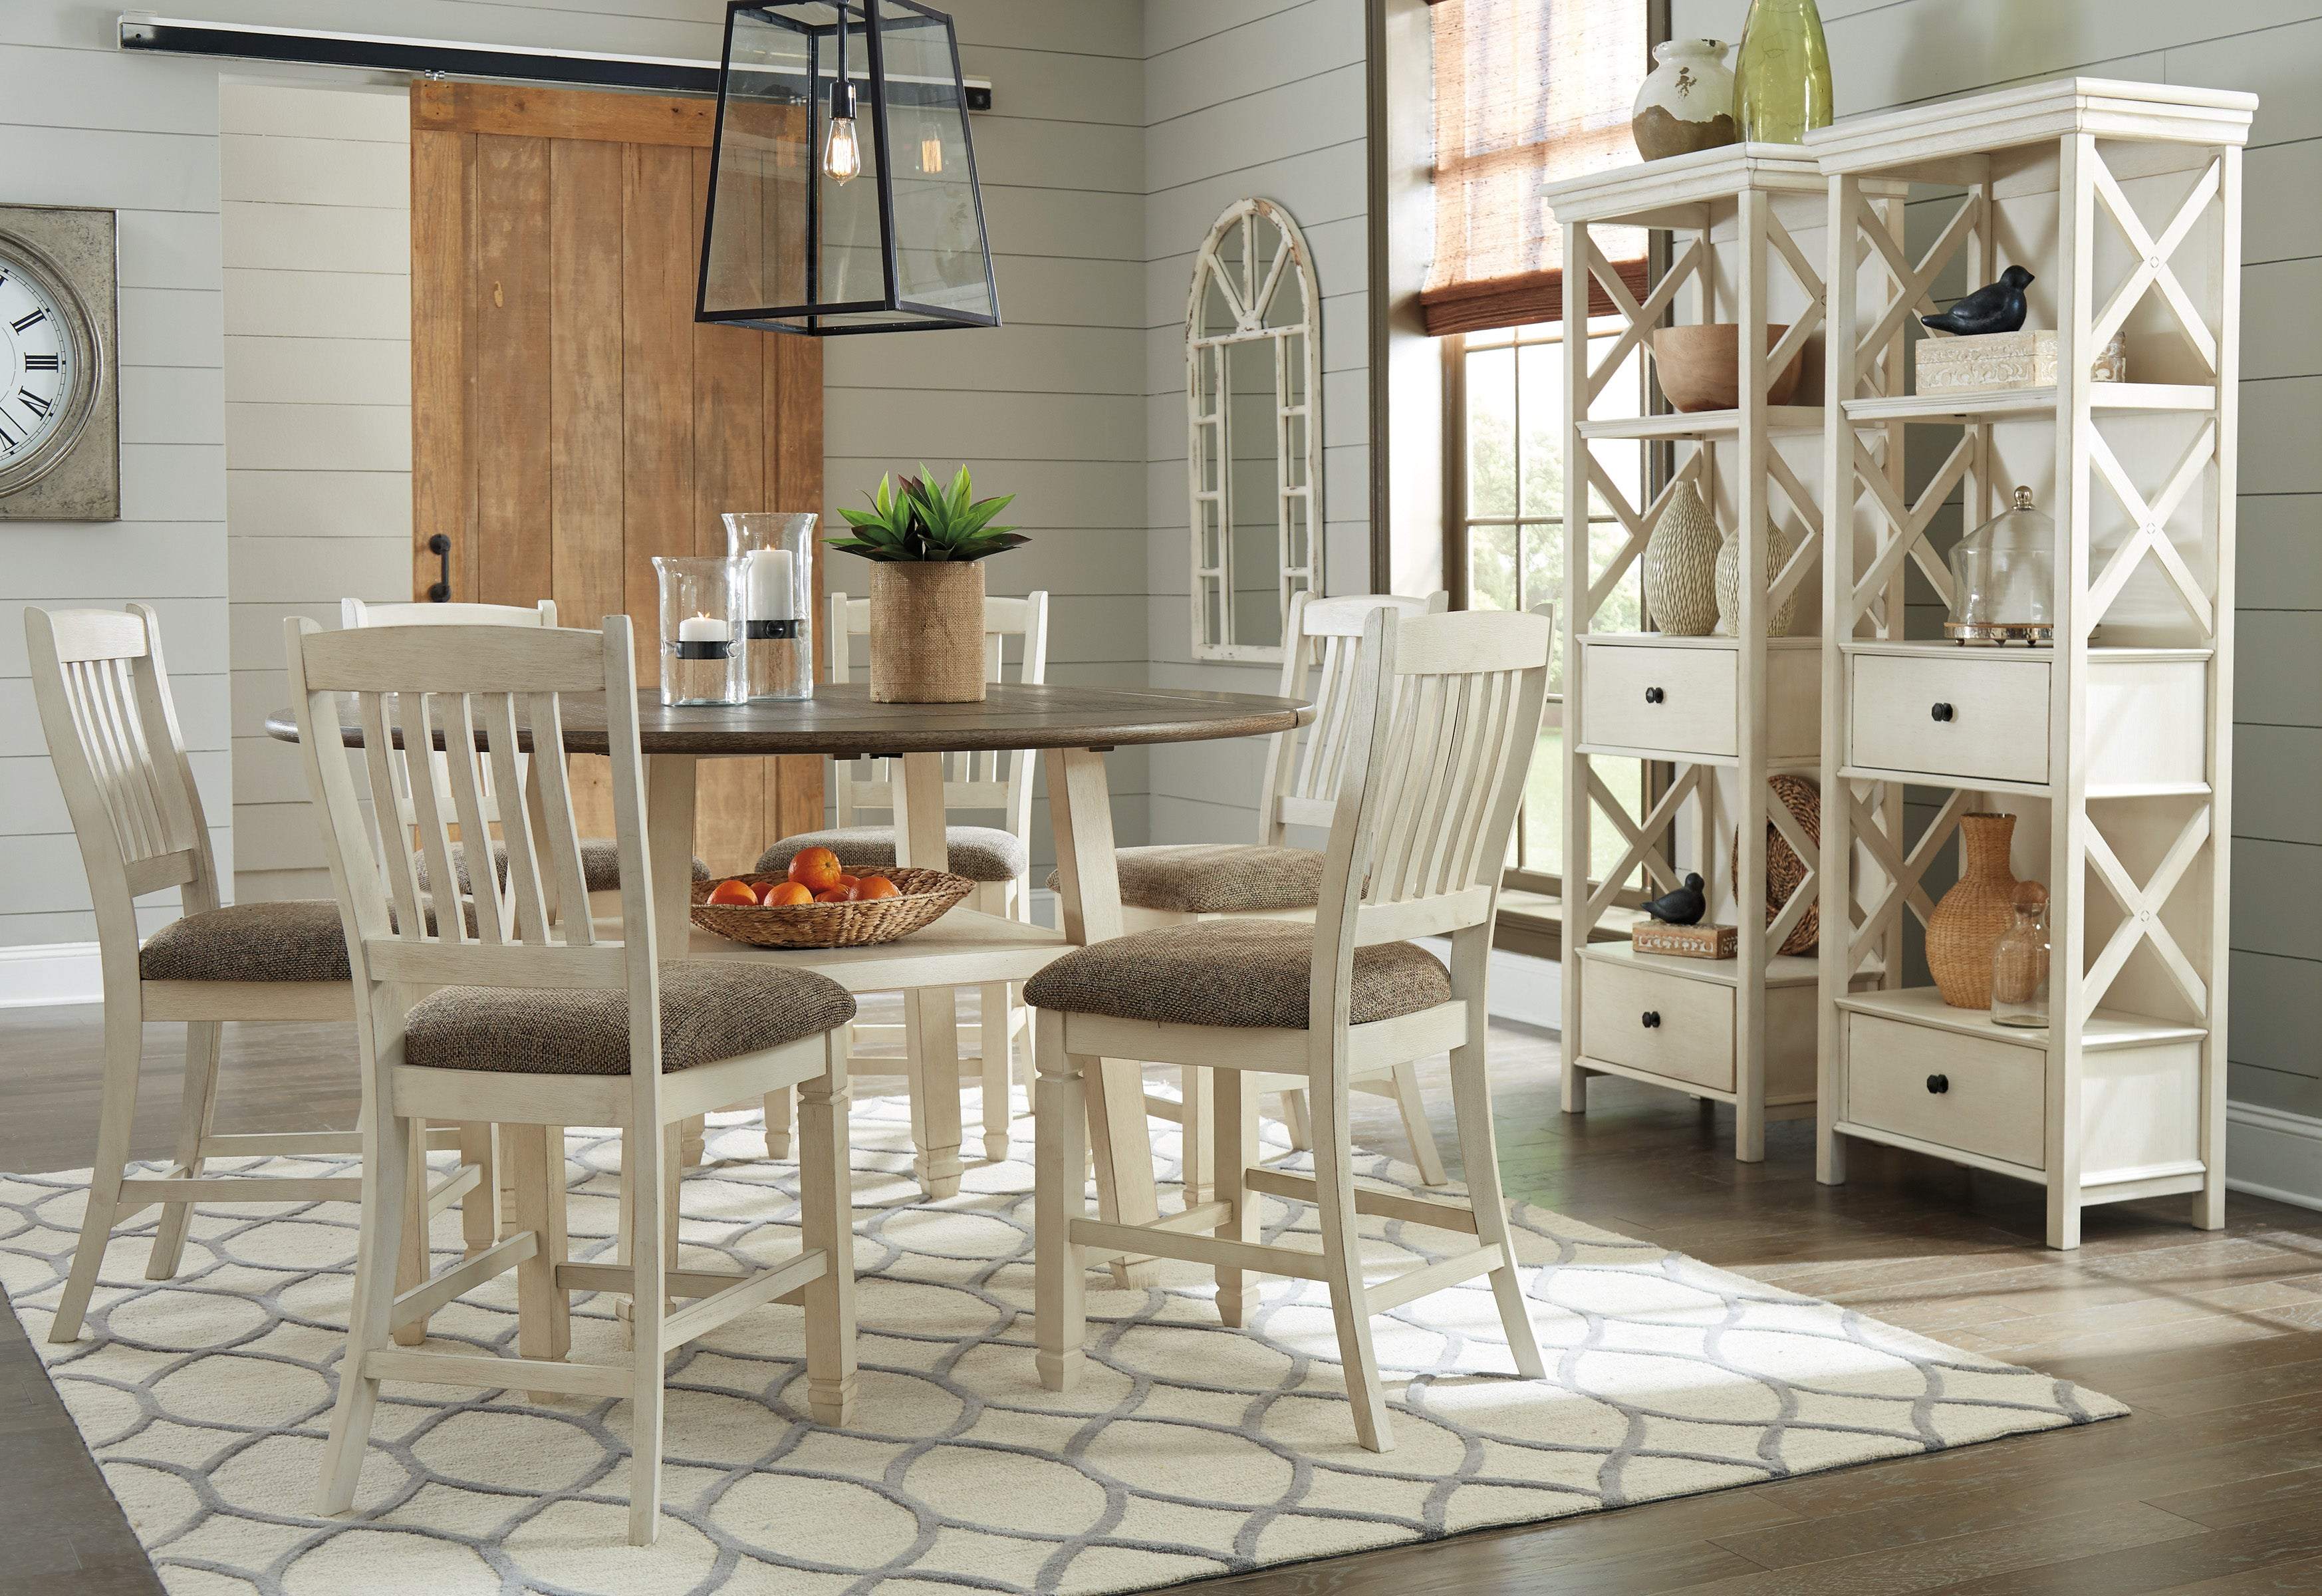 2 x Victor Classic Counter Stools - Lifestyle Furniture